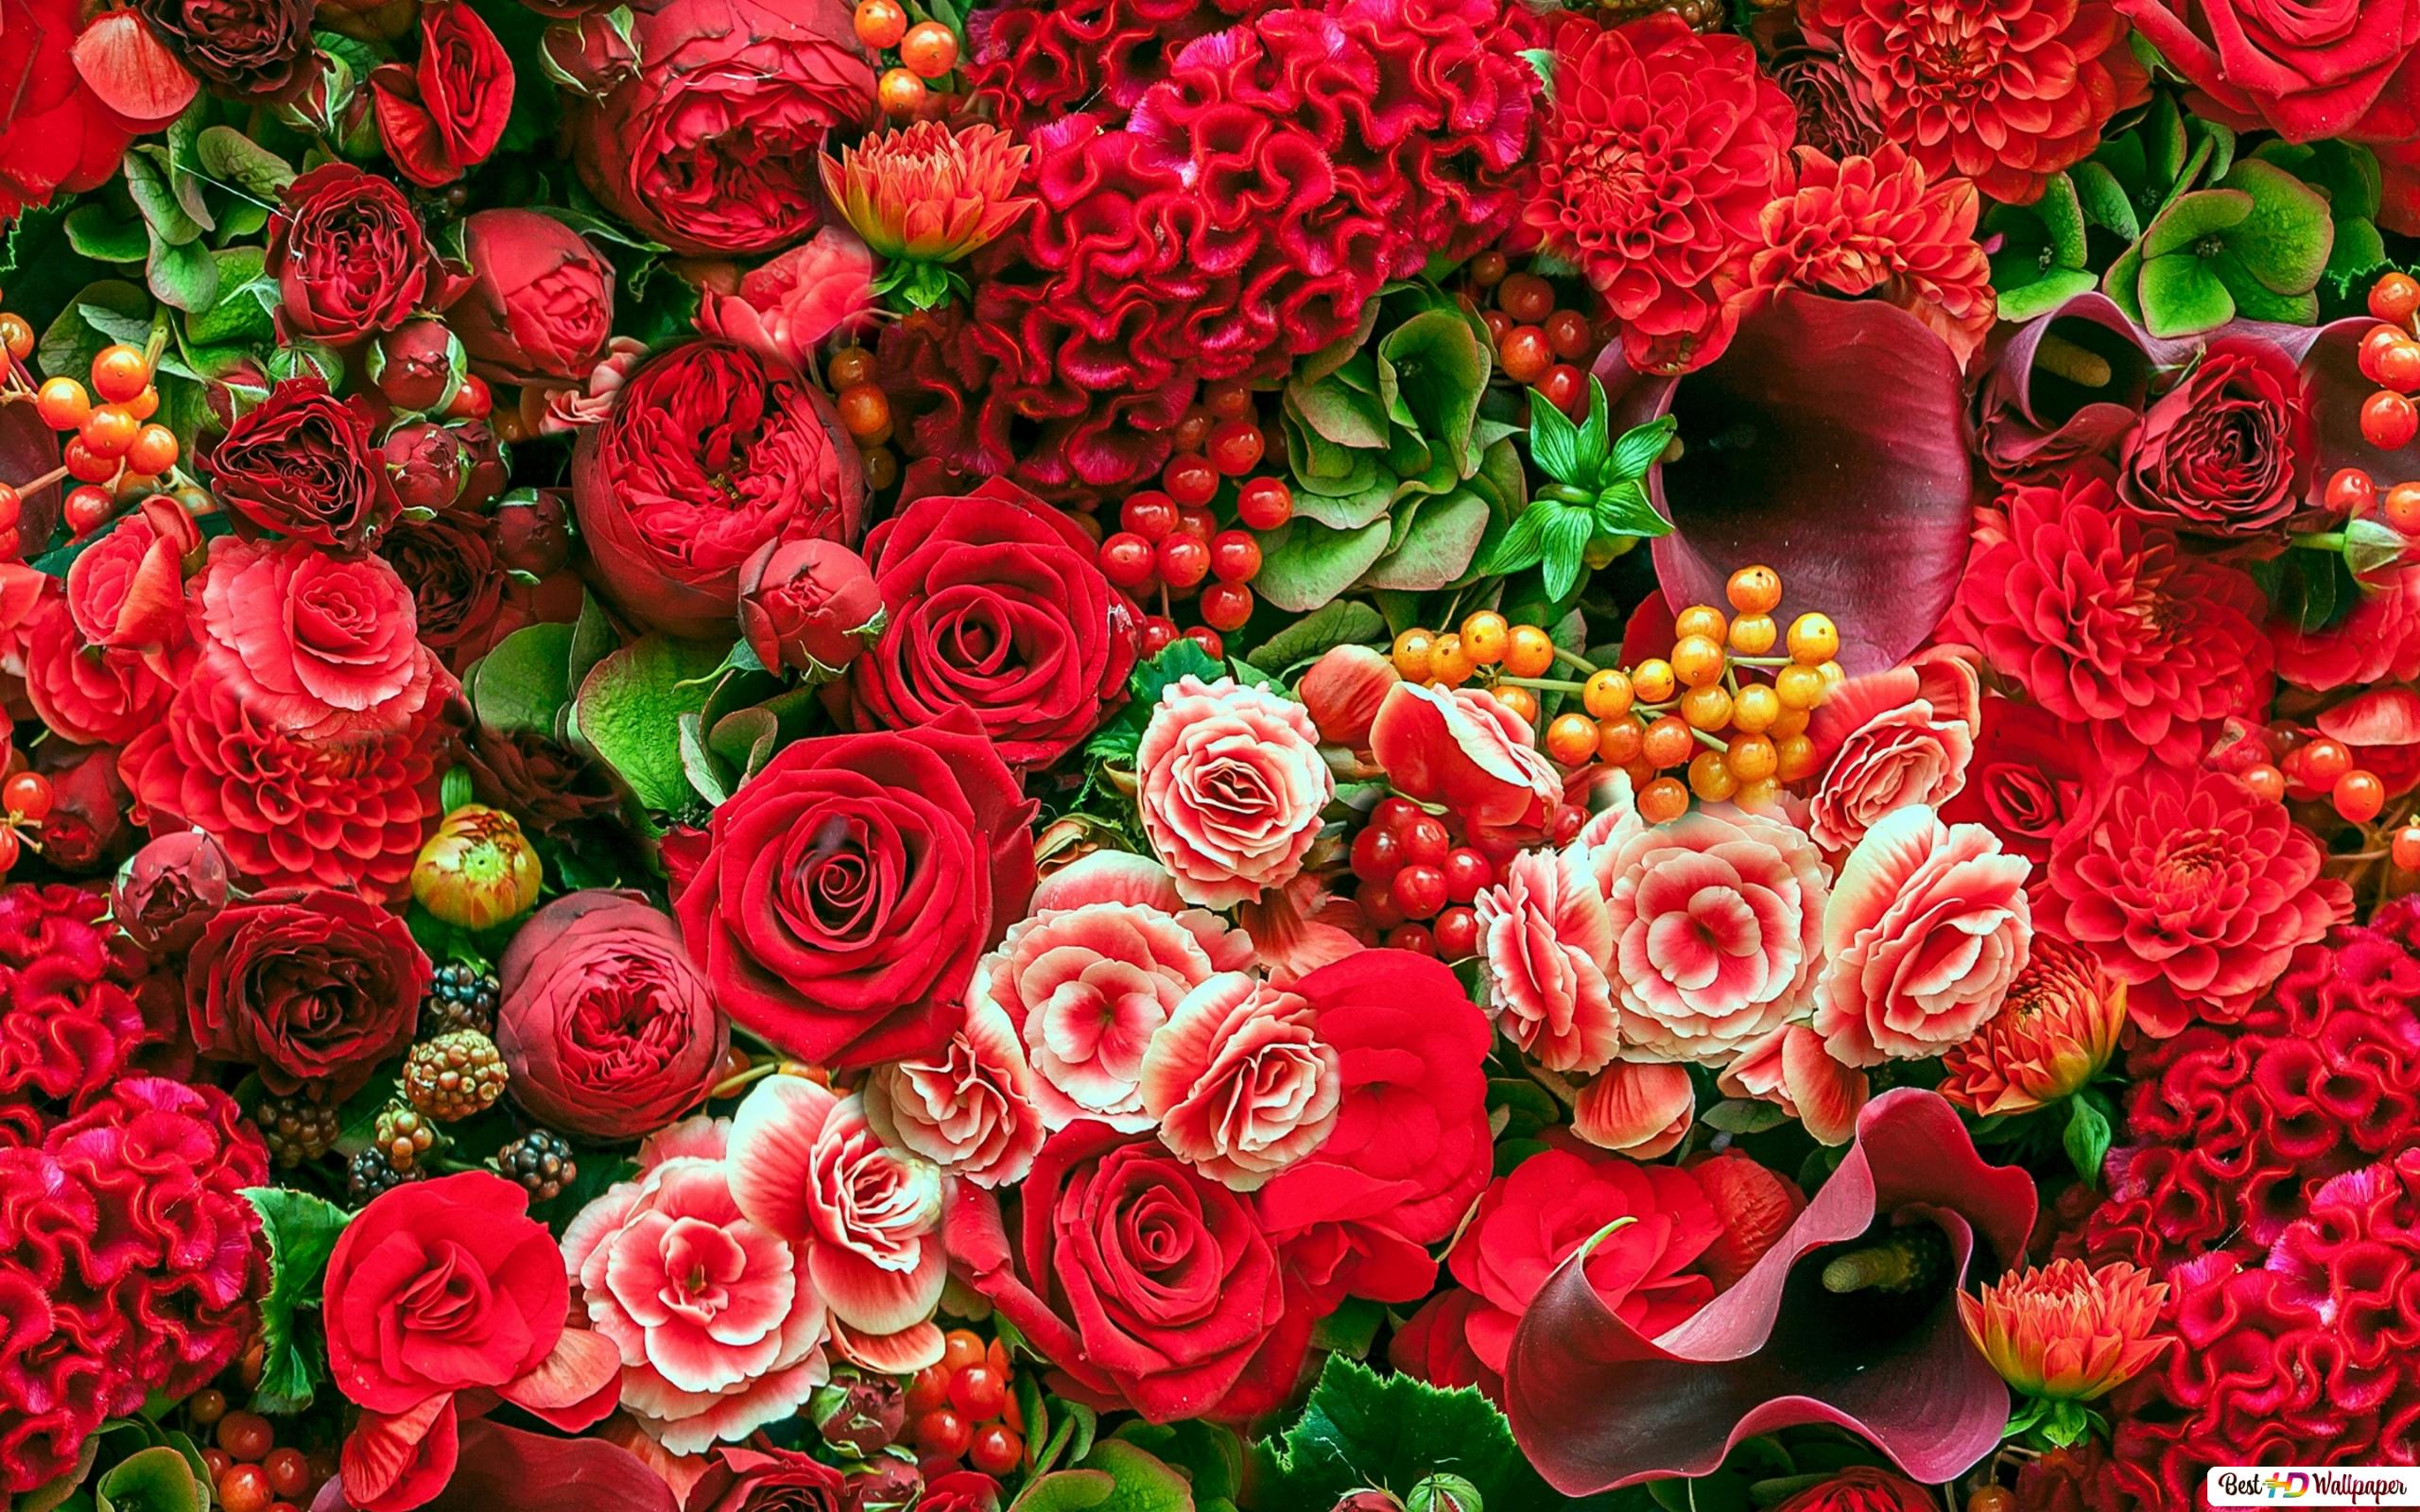 Free Colorful Flower Wallpaper Downloads: Colorful Red Flowers HD Wallpaper Download